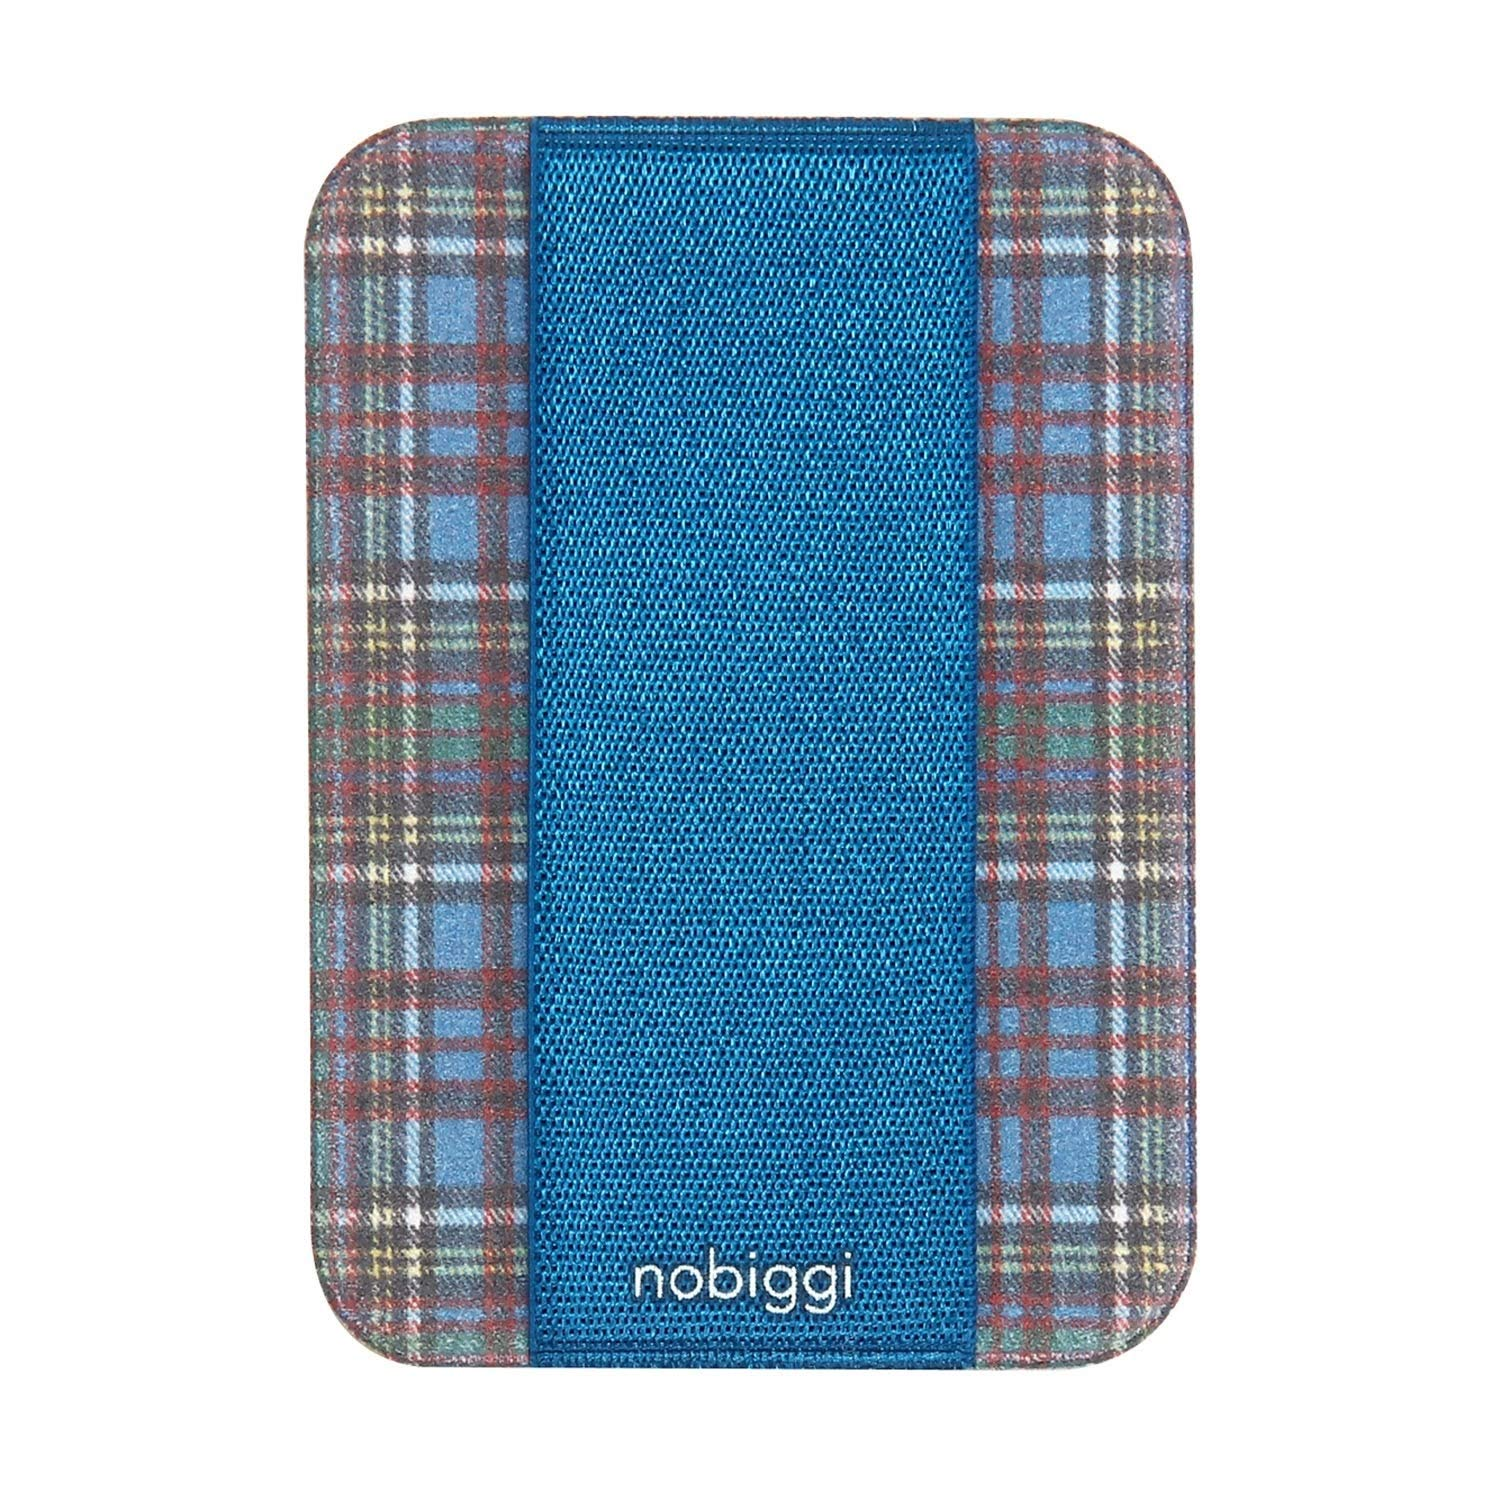 2-Pack nobiggi OG Art Series (Tartan Check Plaid (Blue)) Phone Grip Smartphone Strap by Nobiggi